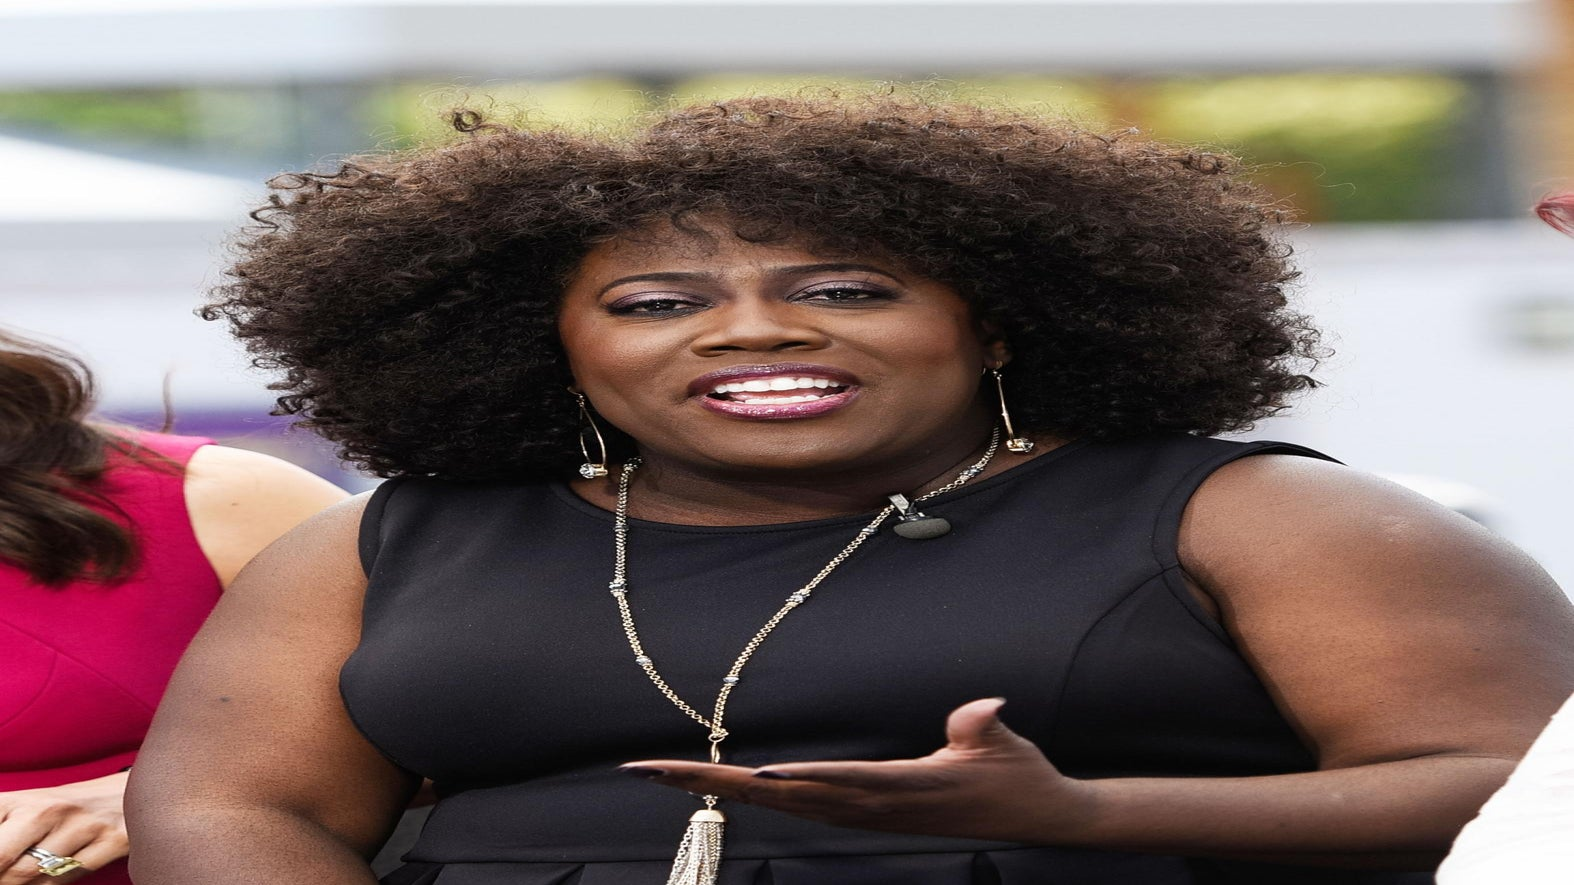 Sheryl Underwood Tears Up Explaining Why She Didn't Share Nude Selfie in Support of Kim Kardashian